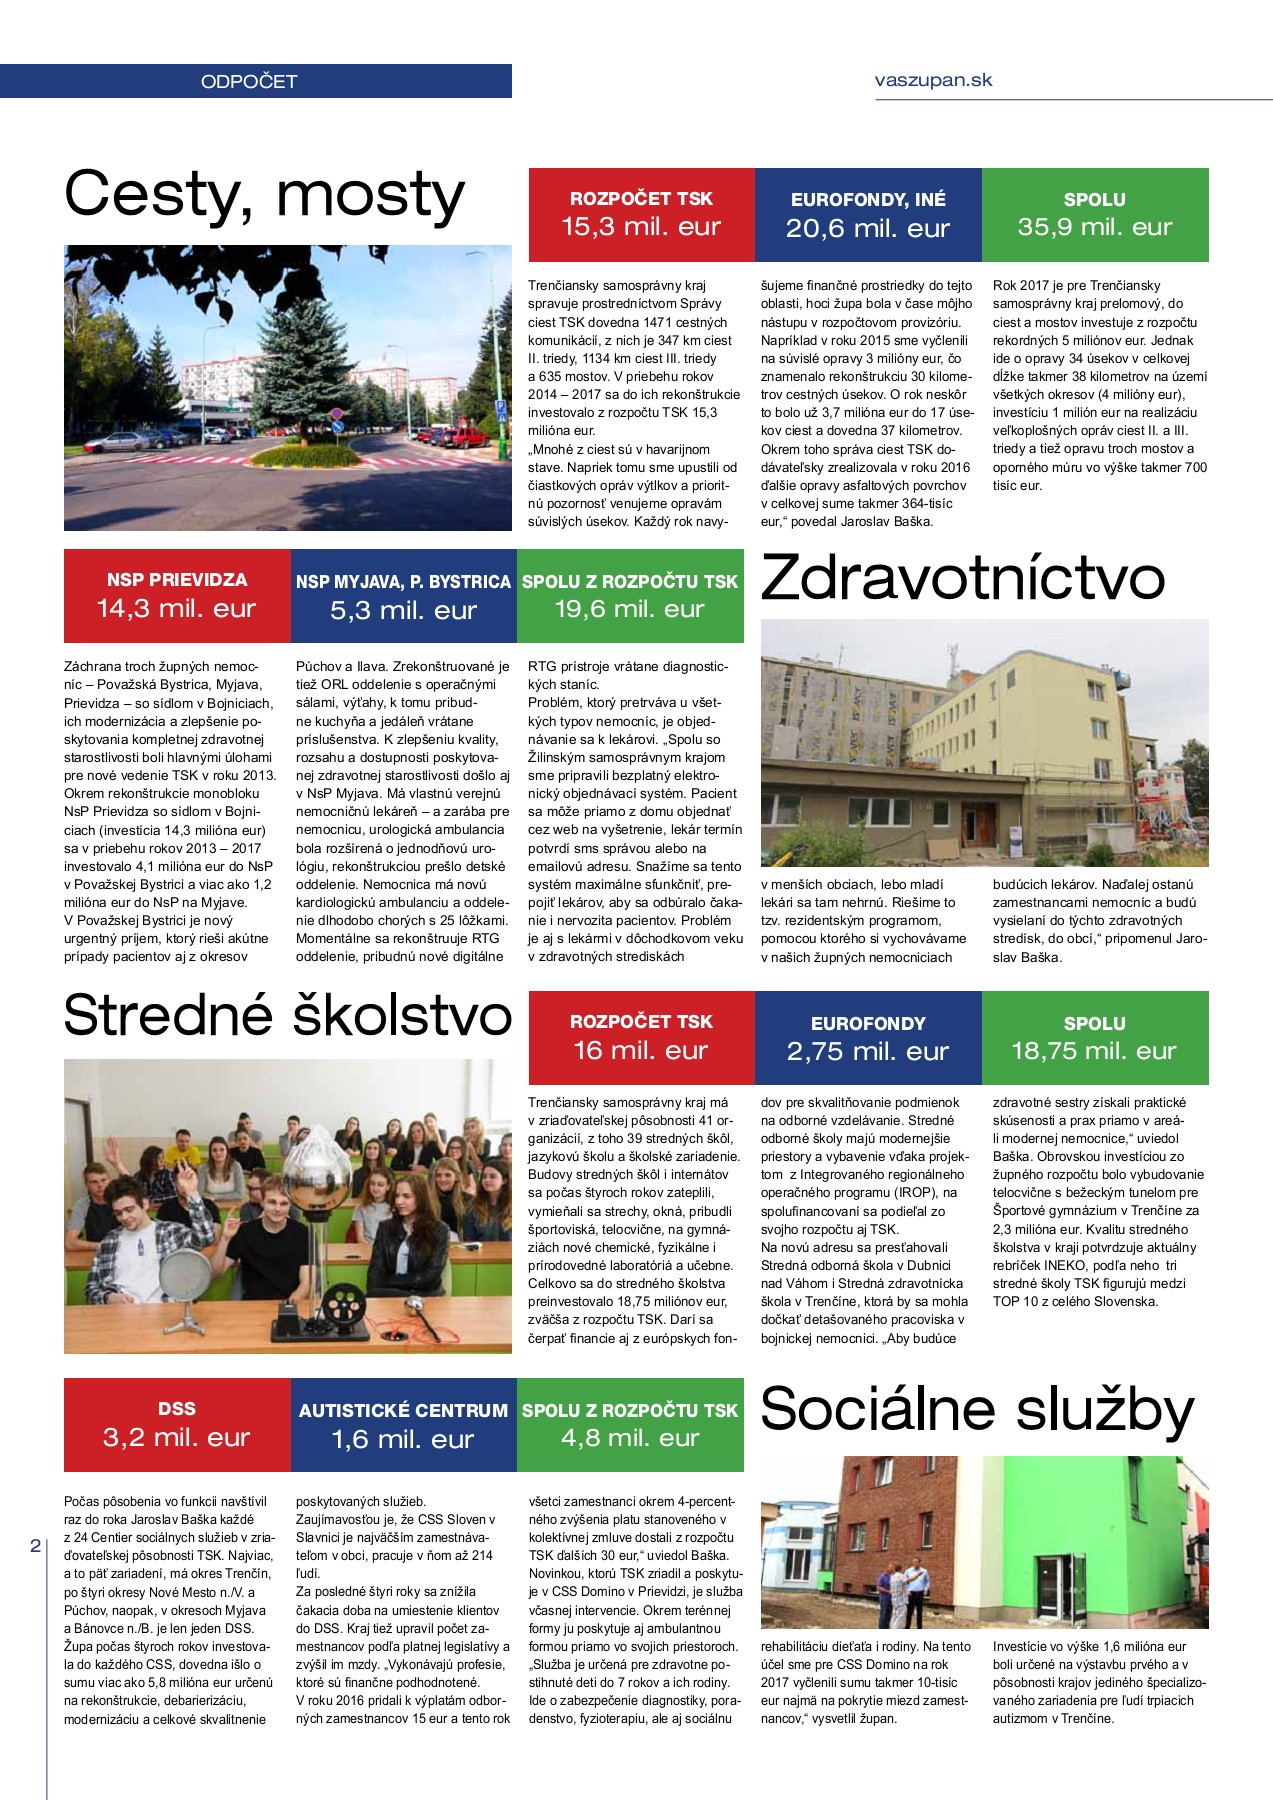 489c385e9c Noviny Vas zupan 01 Pages 1 - 8 - Text Version